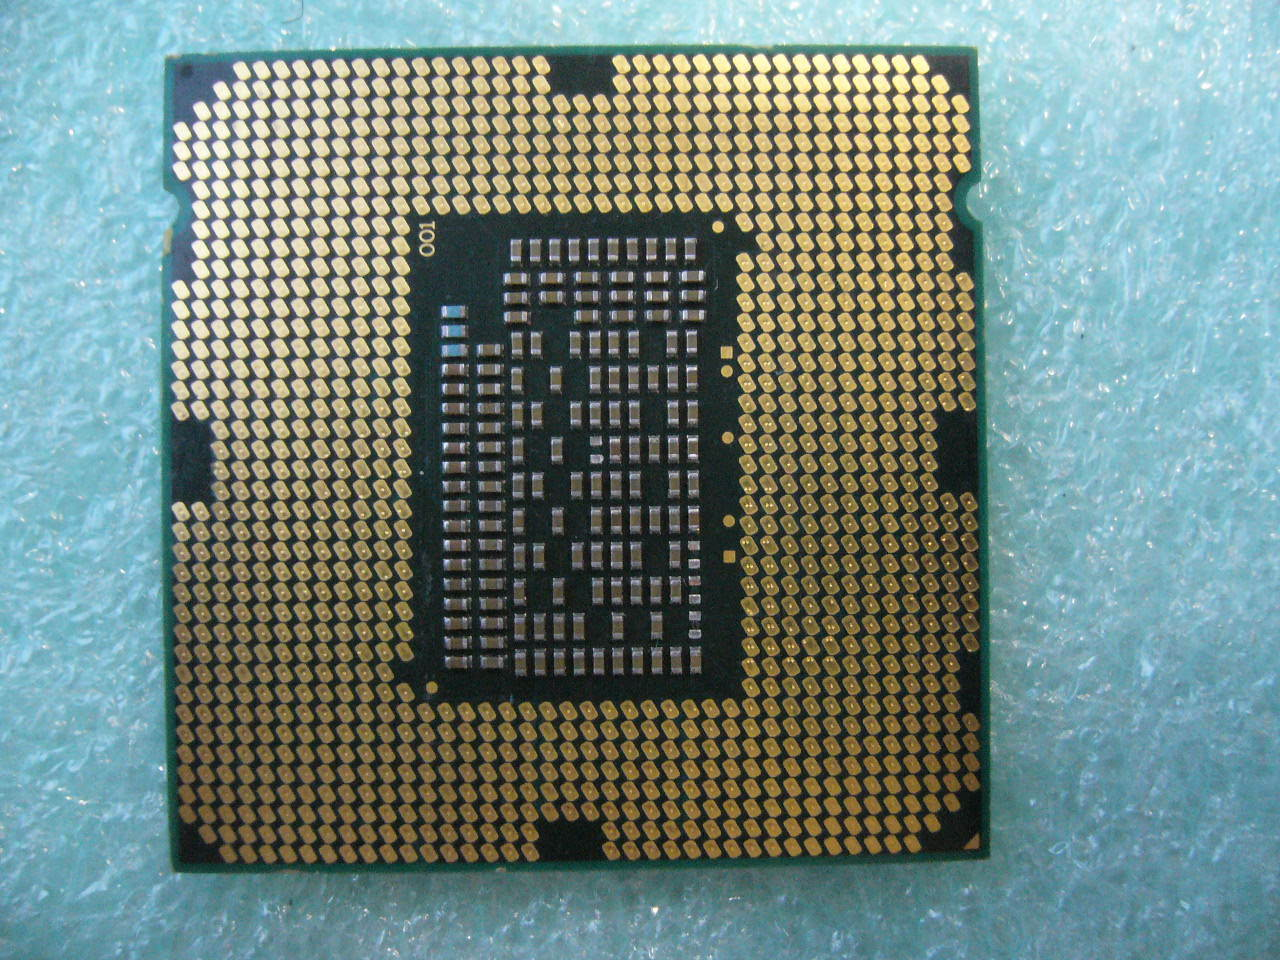 QTY 1x Intel CPU i5-2500S Quad-Cores 2.70Ghz LGA1155 SR009 damaged NOT WORKING